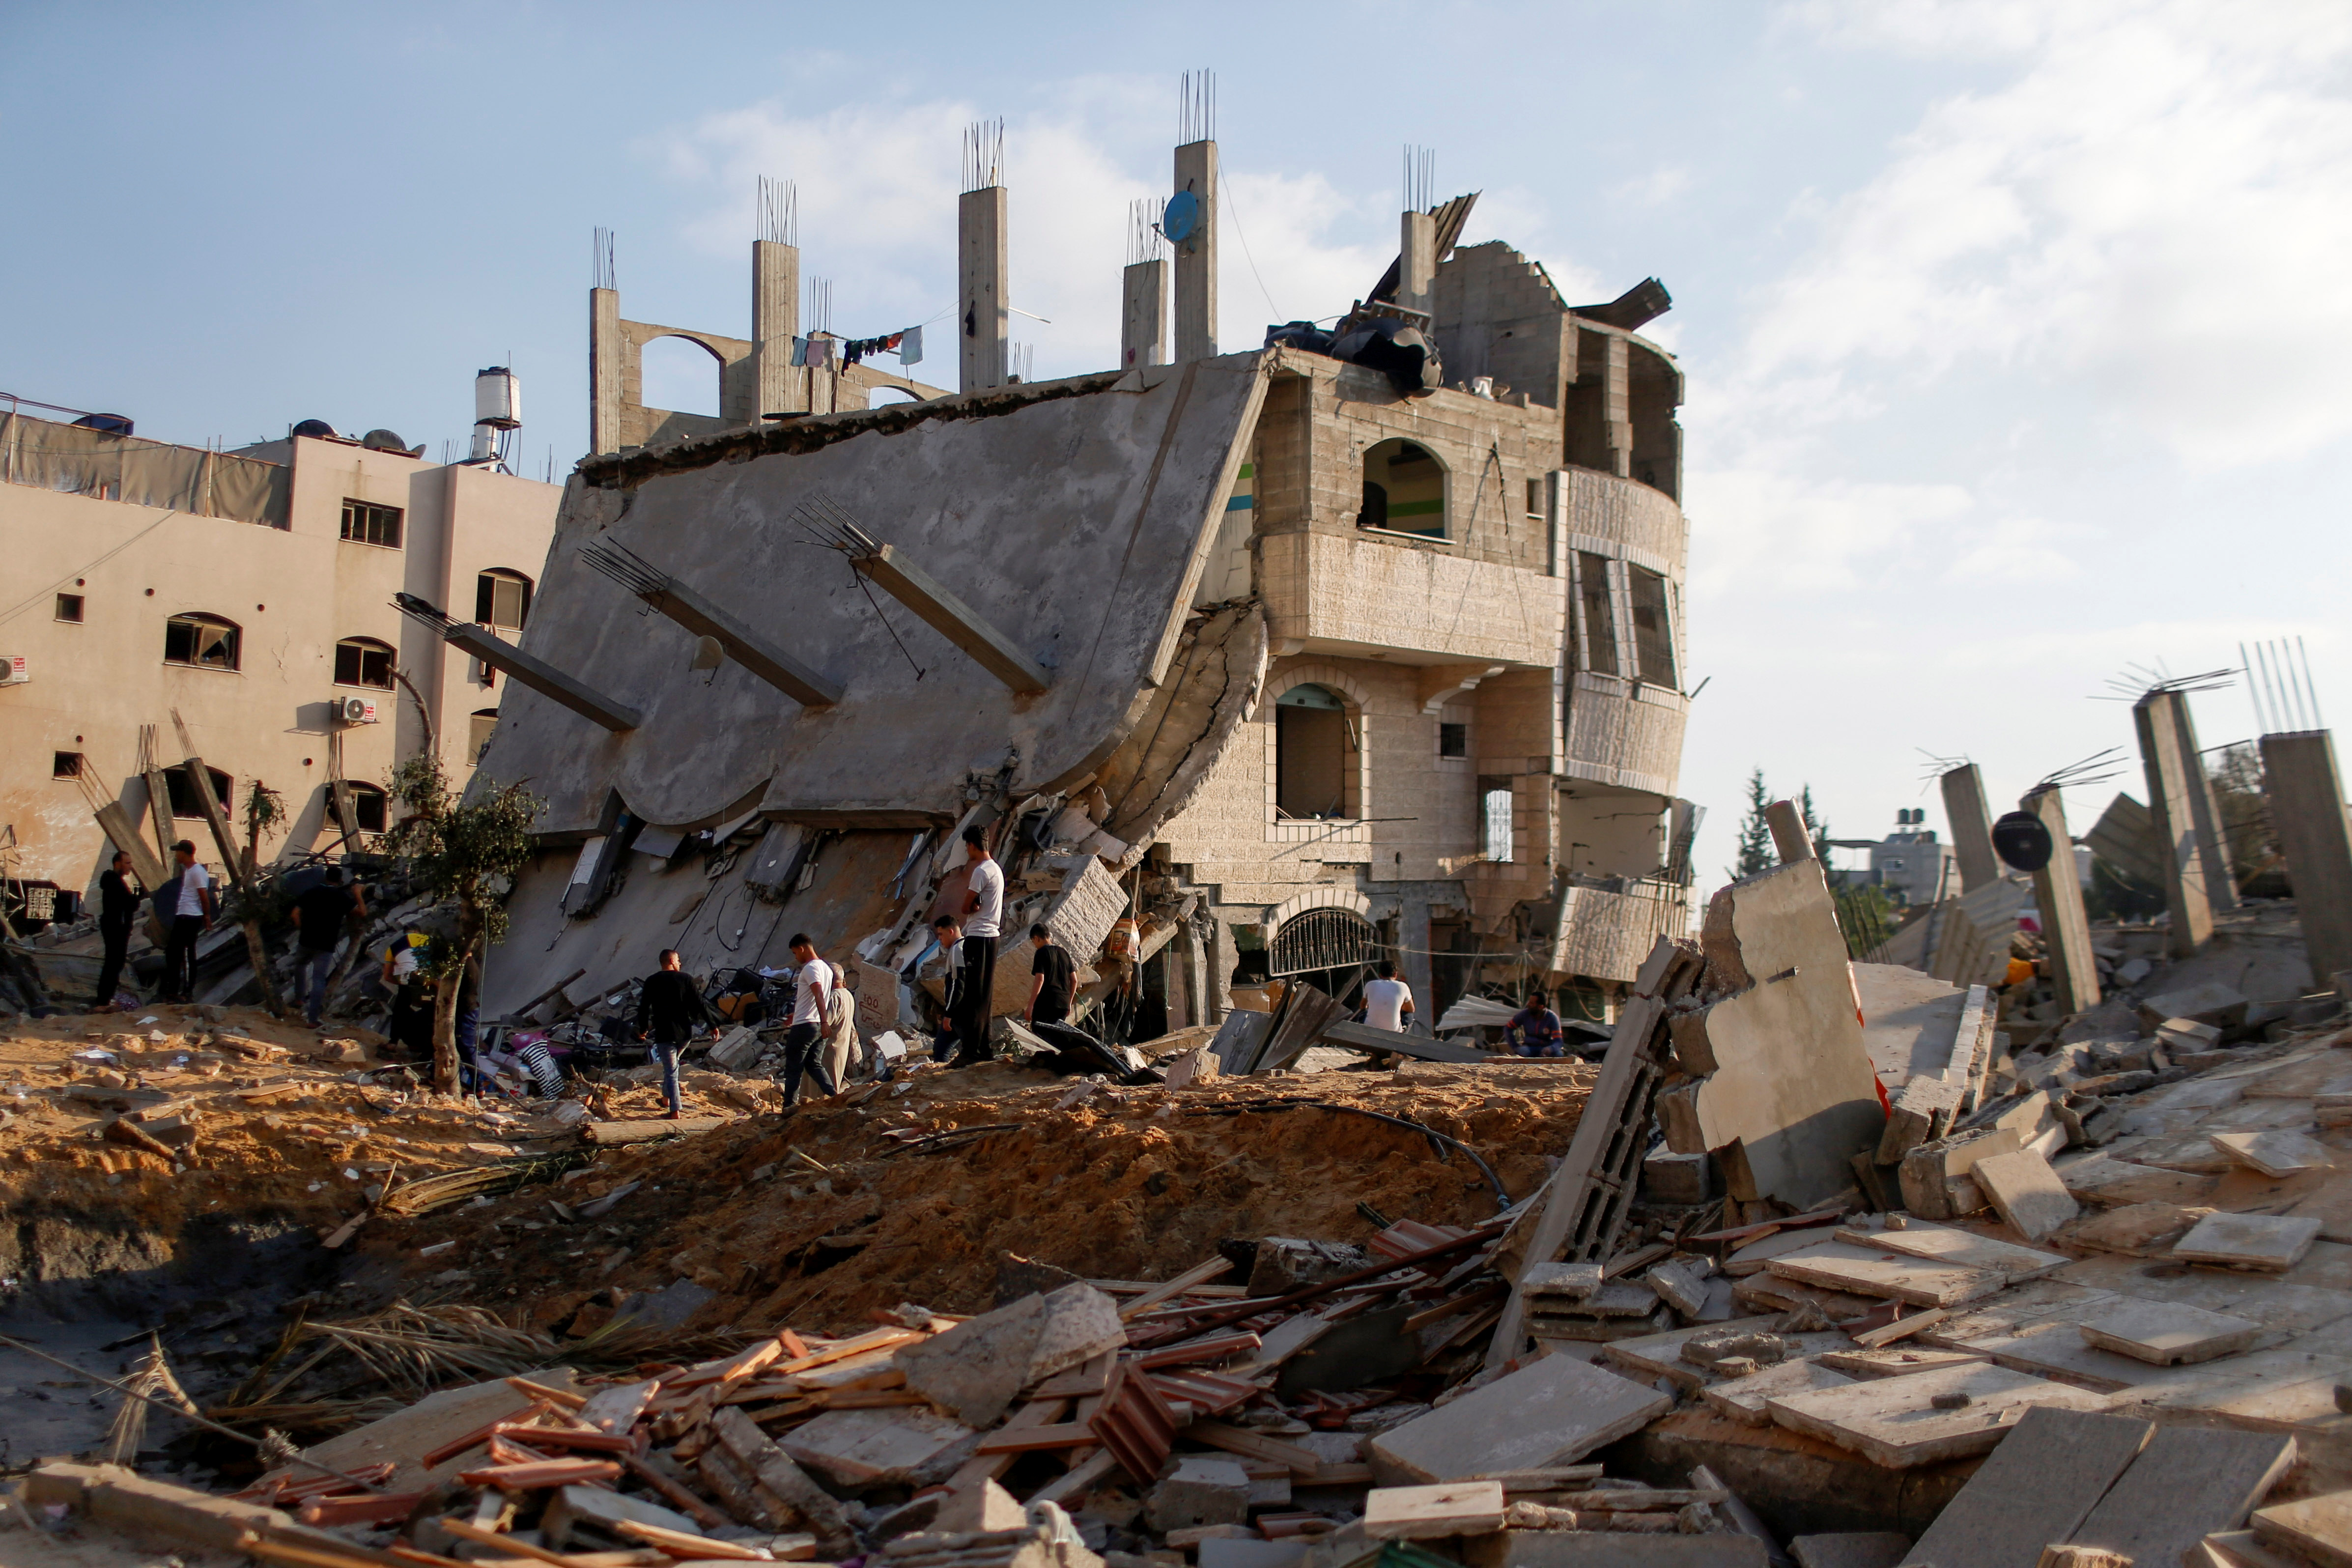 Palestinians gather around the ruins of buildings which were destroyed in Israeli air strikes amid a flare-up of Israeli-Palestinian violence, in the northern Gaza Strip May 13, 2021. REUTERS/Mohammed Salem